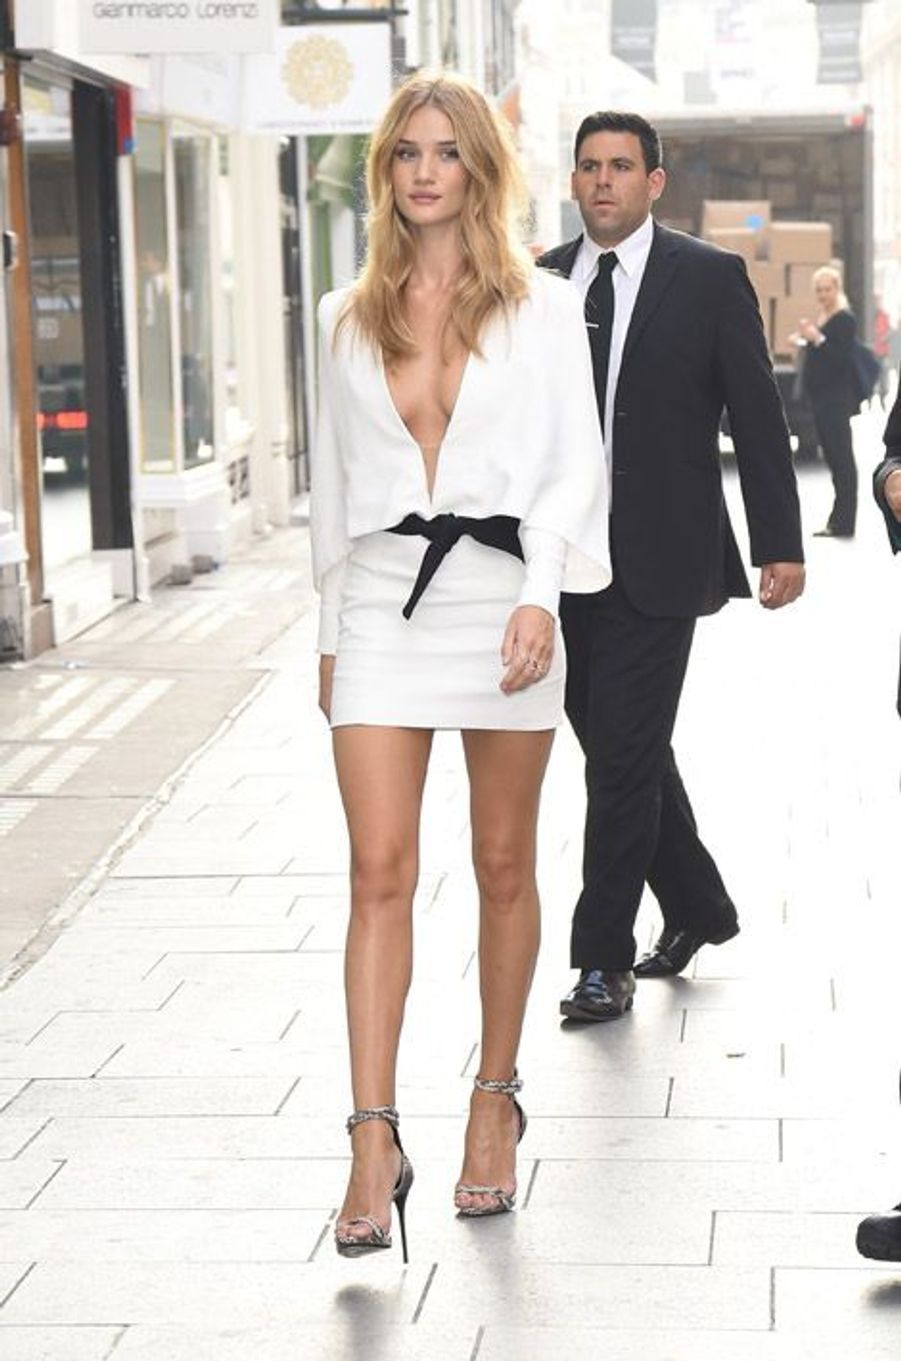 Le mannequin Rosie Huntington-Whitely à Londres, le 19 septembre 2014